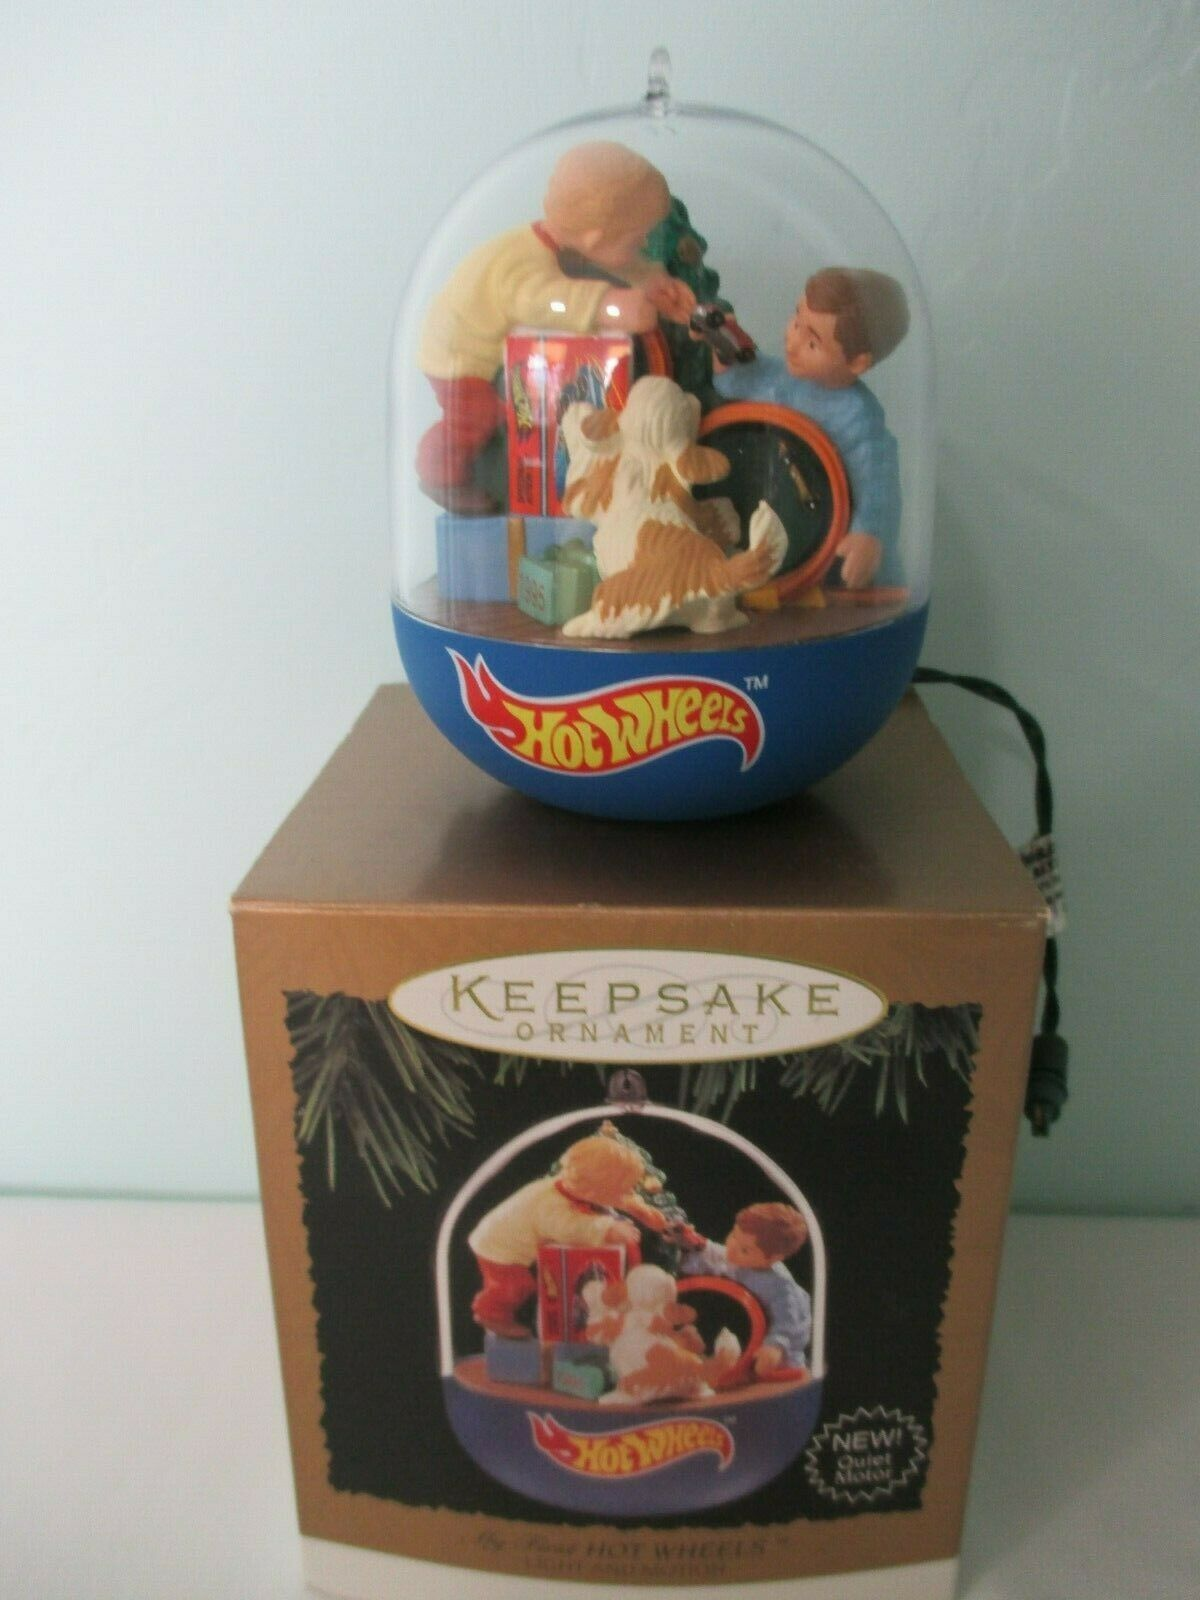 My First Hot Wheels Light and Motion Hallmark Magic Ornament 1995 Gently Used image 2